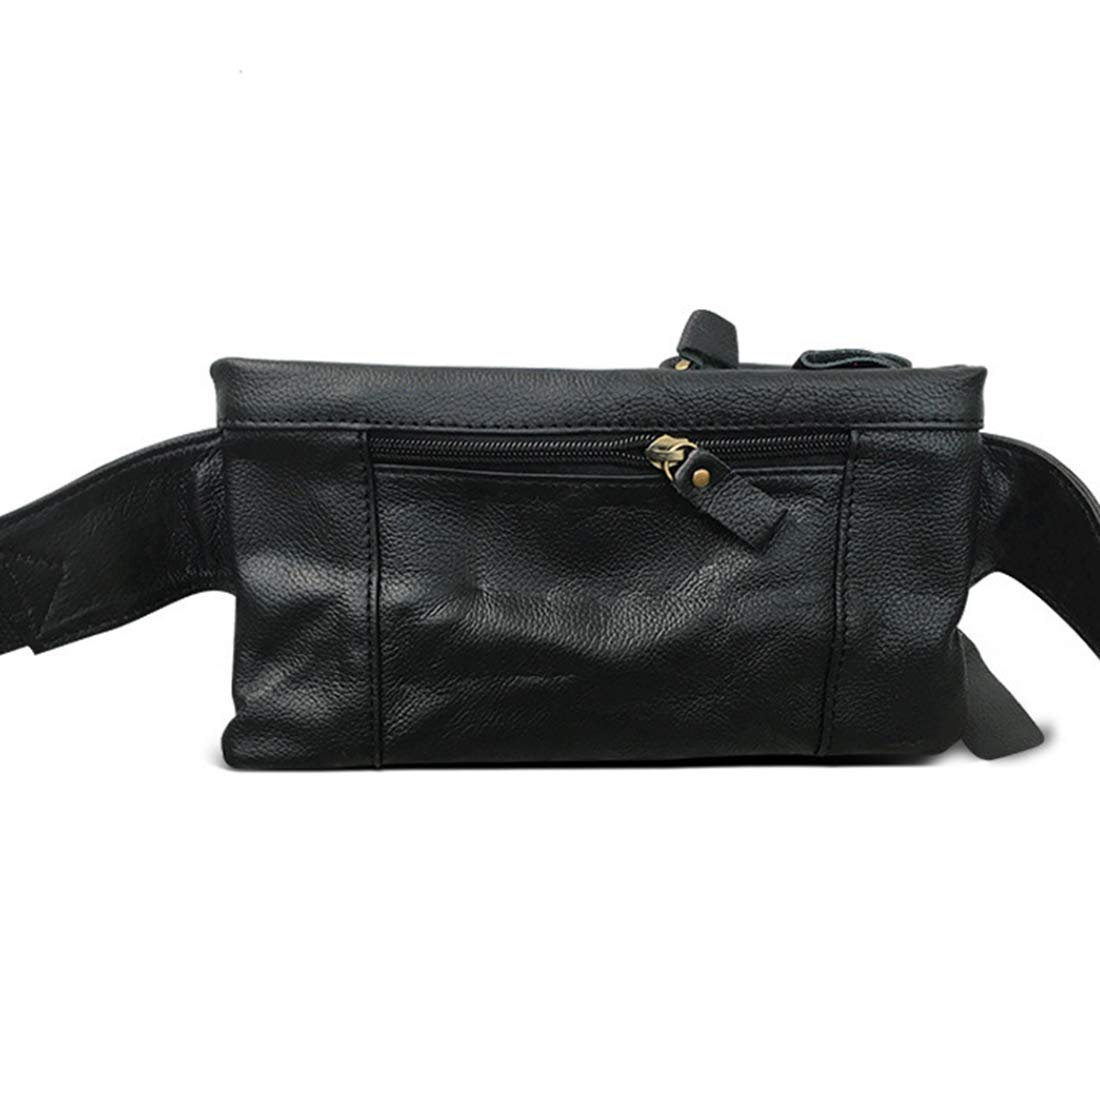 Color : Black RABILTY Belt Holster Bag Fanny Waist Pack Crossbody Bag for Men Boy Black Cowhide Travel Money Belt RFID Blocking